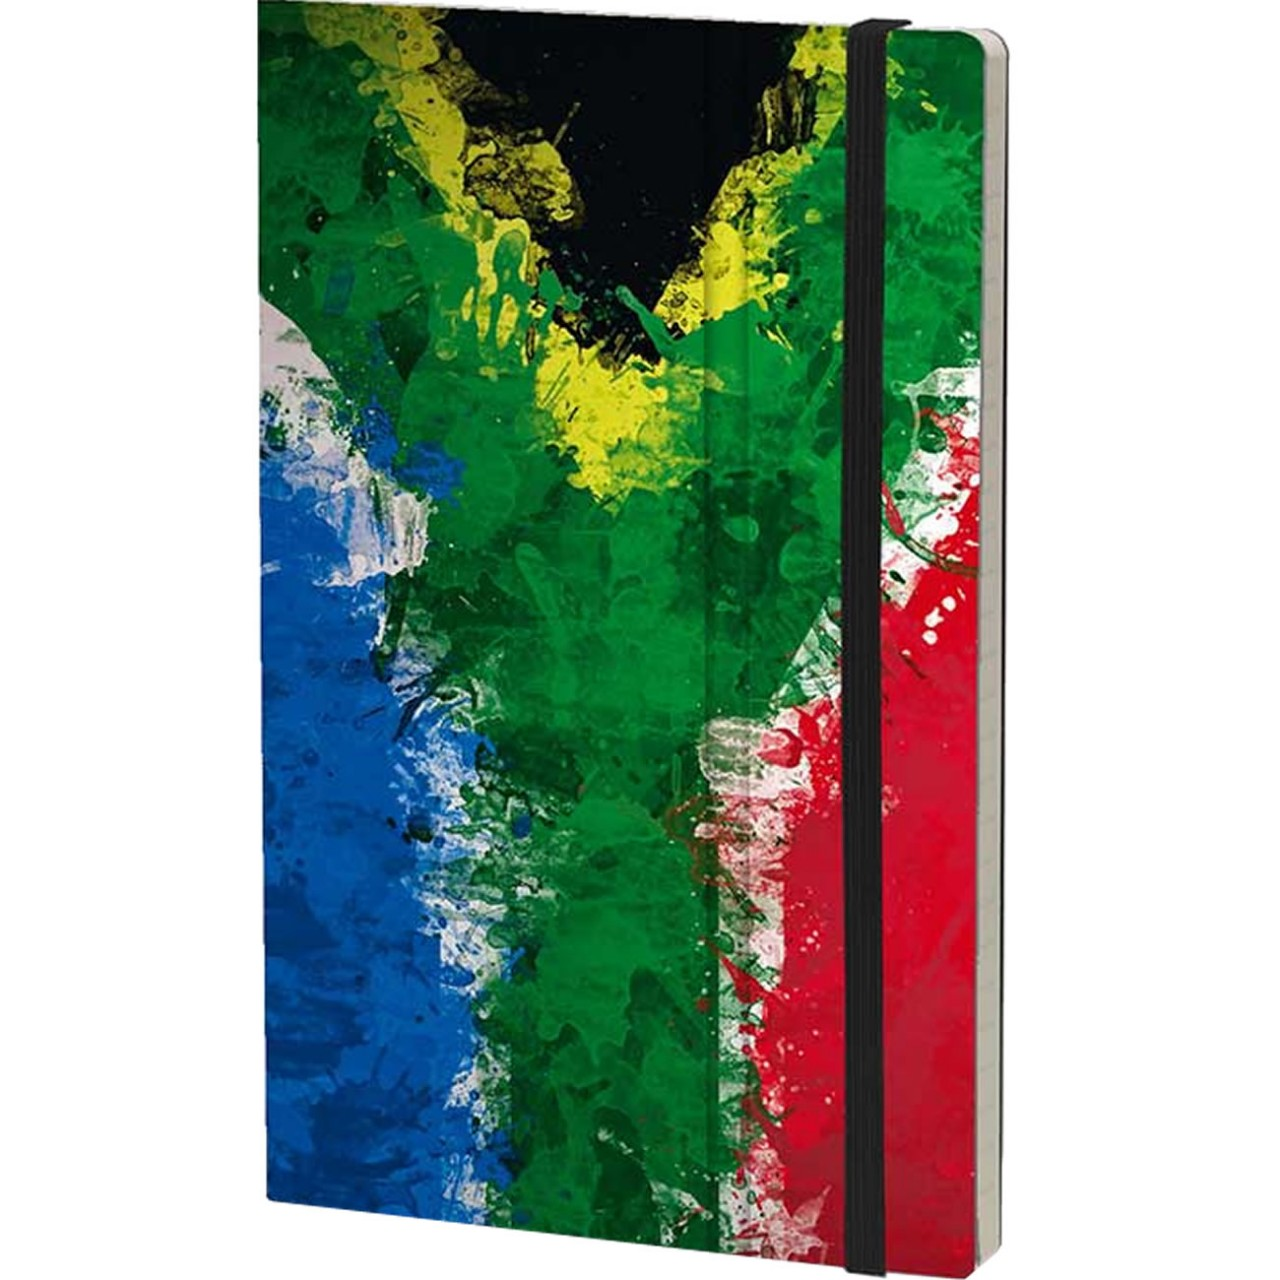 Stifflexible Notizbuch HISTORICAL NOTES 13 x 21 cm 192 S., IT ALWAYS SEEMS IMPOSSIBLE UNTIL IT'S DONE (South Africa Flag)